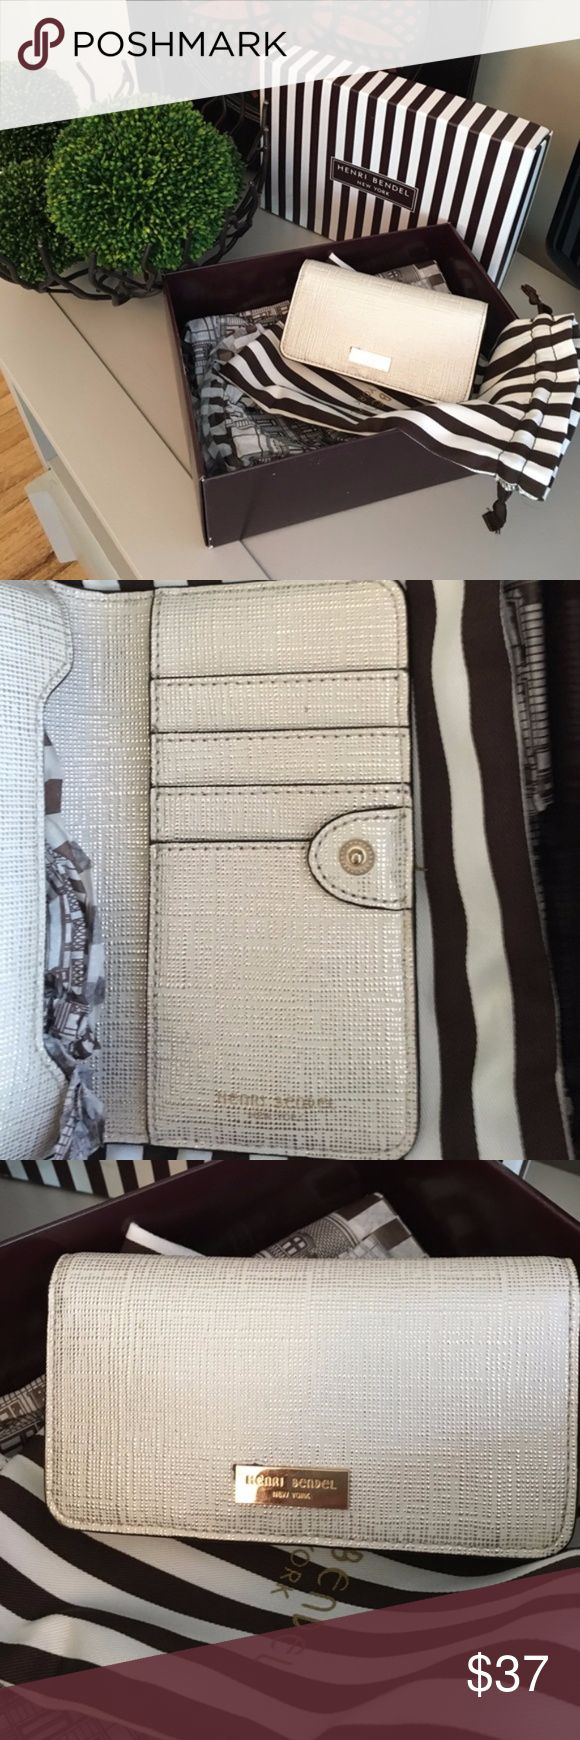 "Henri Bendel phone wallet/clutch This is a brand new Henri Bendel phone wallet that fits iPhone 6/6s. Glamorous metallic gold color with gold emblem on the front. Classic wallet that goes with any bag in mint condition! This is not available in stores or online! Wallet measures 6""x3.5"". Comes with tag, box and dust bag.  This is a re-posh because sadly my phone doesn't fit in the wallet with my case on... and I have a 3 year old so going without a case is not an option! henri bendel Bags…"